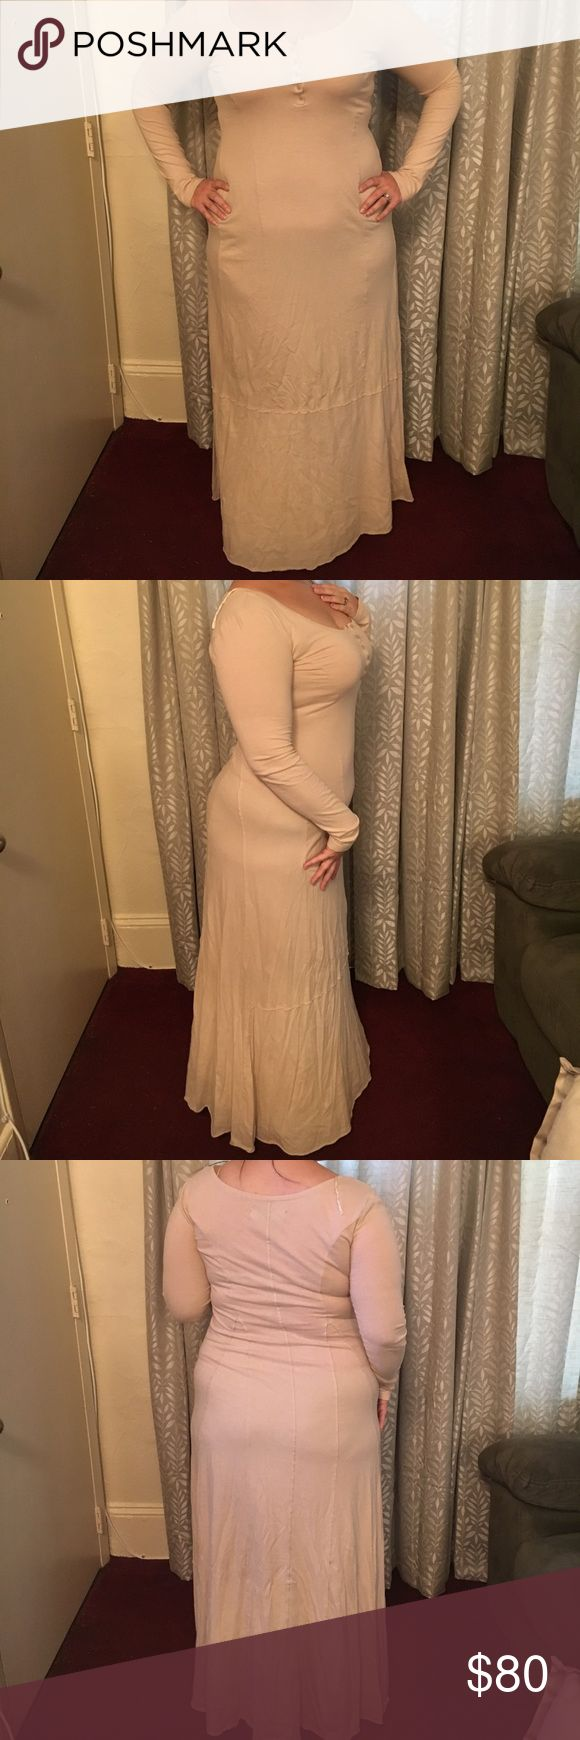 Free People Miles of Henley Dres Free People long sleeve beige maxi dress with Henley neckline. There are a few very slight discoloration sat the bottom of the hem that are almost unnoticeable, see last two pictures. Very comfortable and easy dress. 100% Cotton. Free People Dresses Maxi